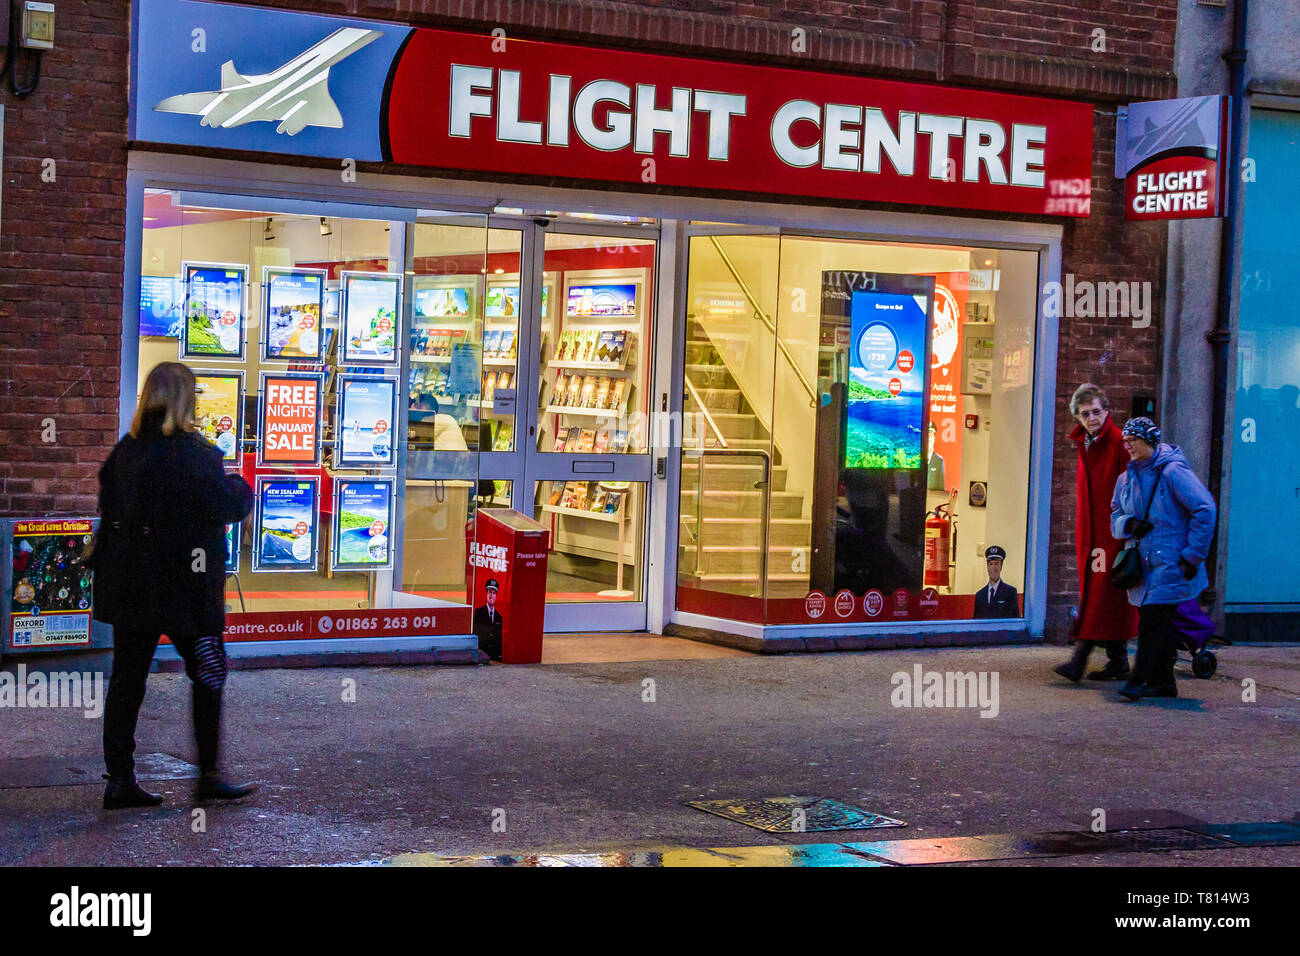 People passing the shop front exterior of a Flight Centre travel agency, Queen St, Oxford, UK. December 2018. - Stock Image